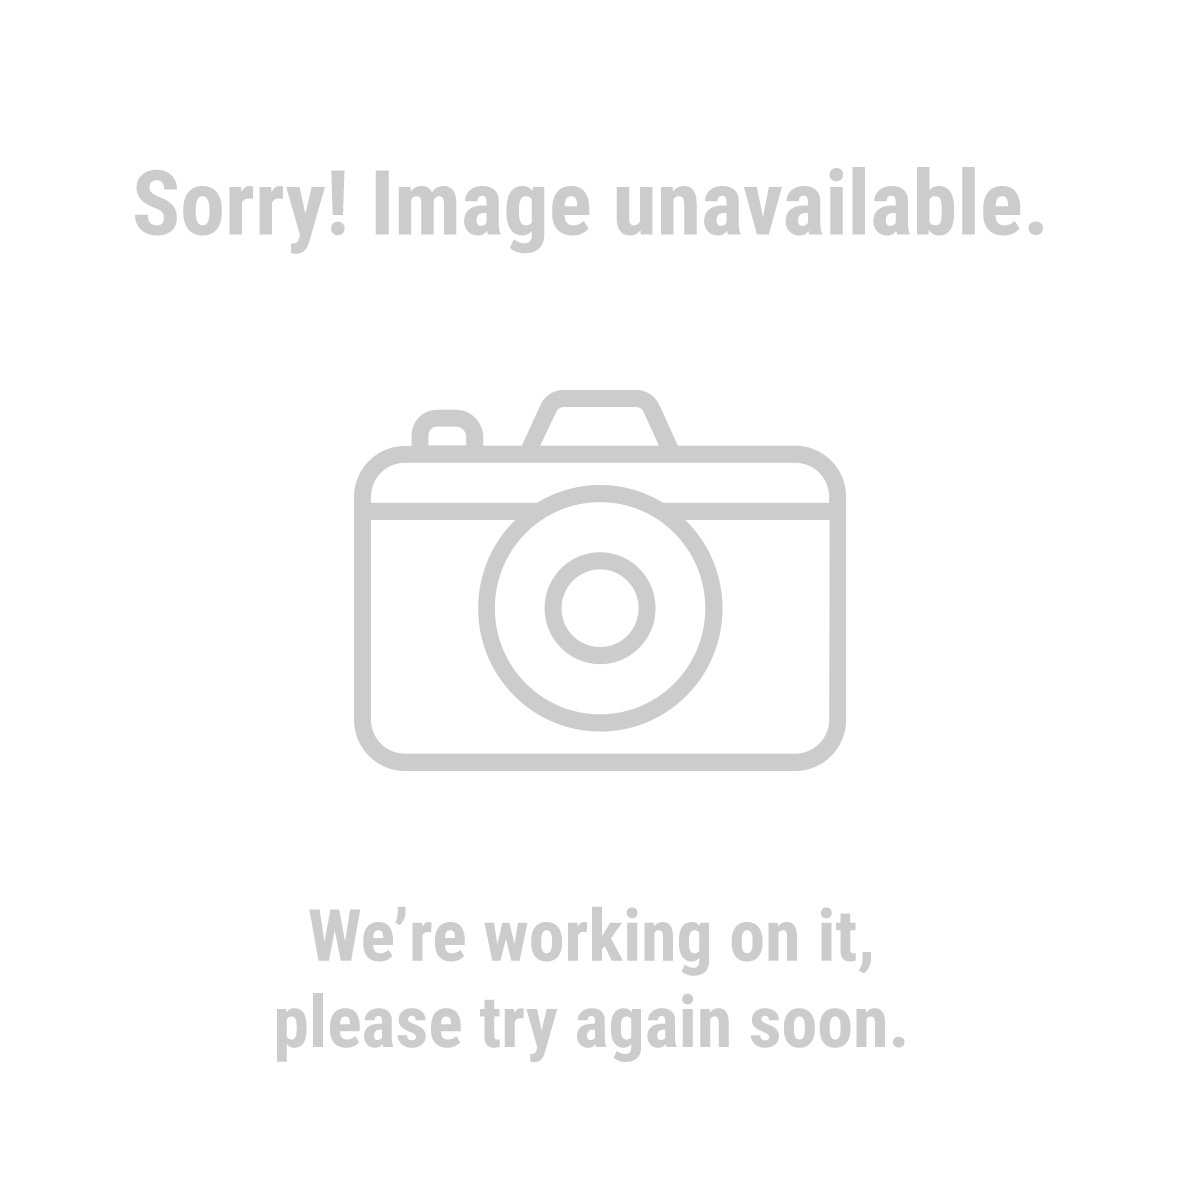 North American Health+Wellness 68055 Adjustable Height Folding Cane